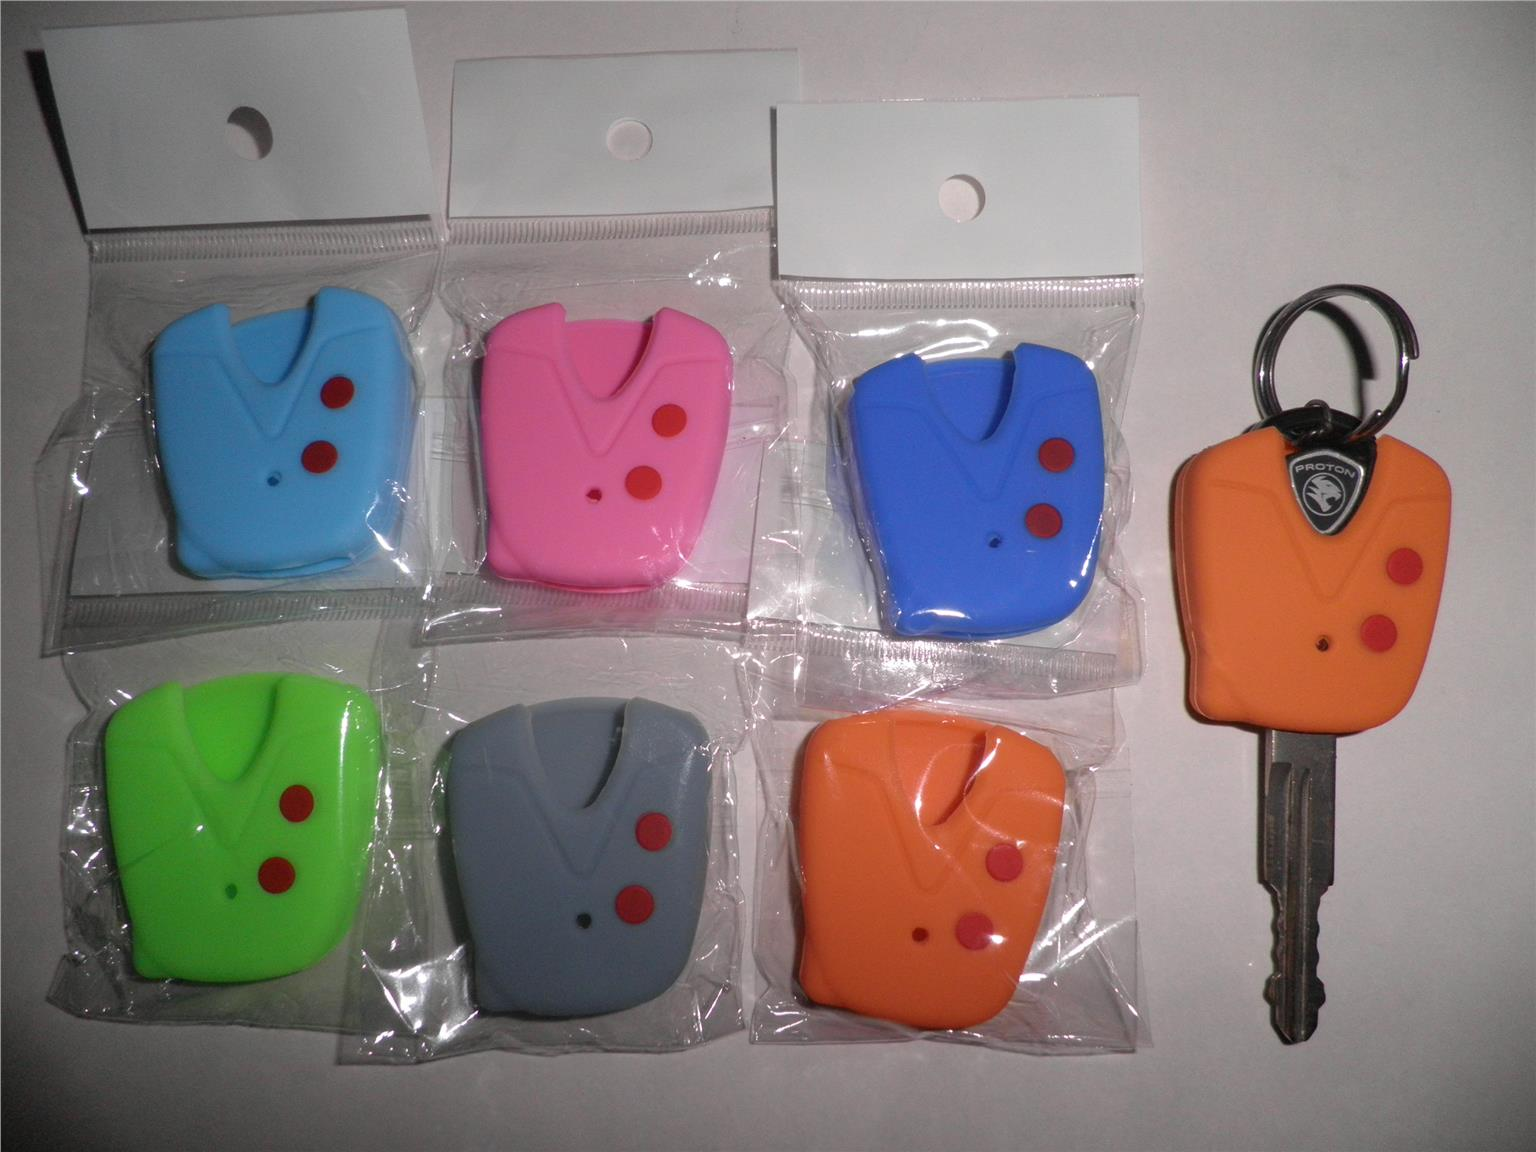 PROTON Saga Waja FLX Silicone Car Key Cover for 2 pcs